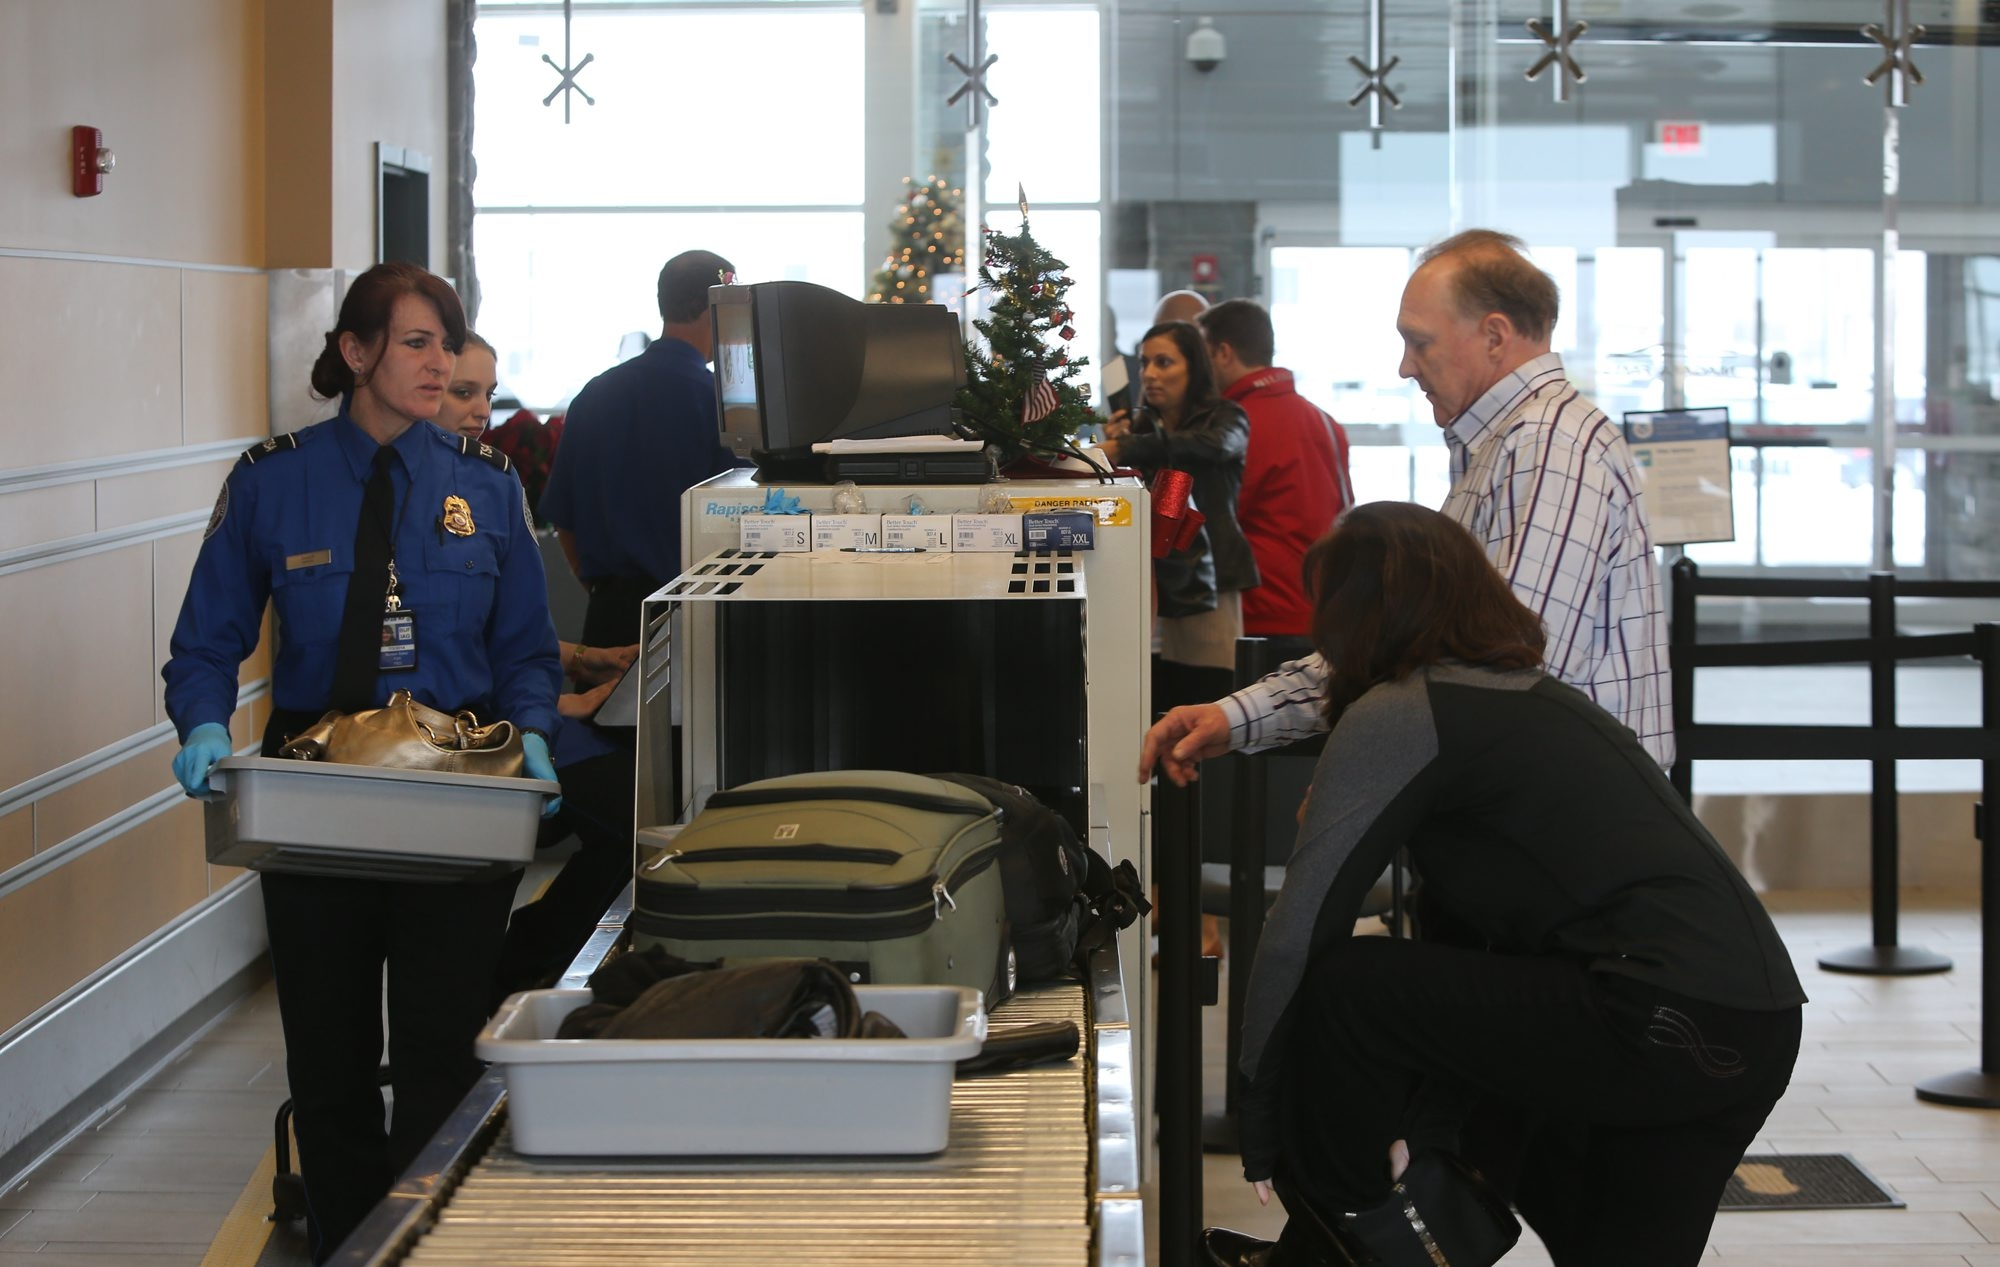 Transportation Security Administration officials carry plastic trays as passengers watch their belongings go through the scanner at the security check at Niagara Falls International Airport.